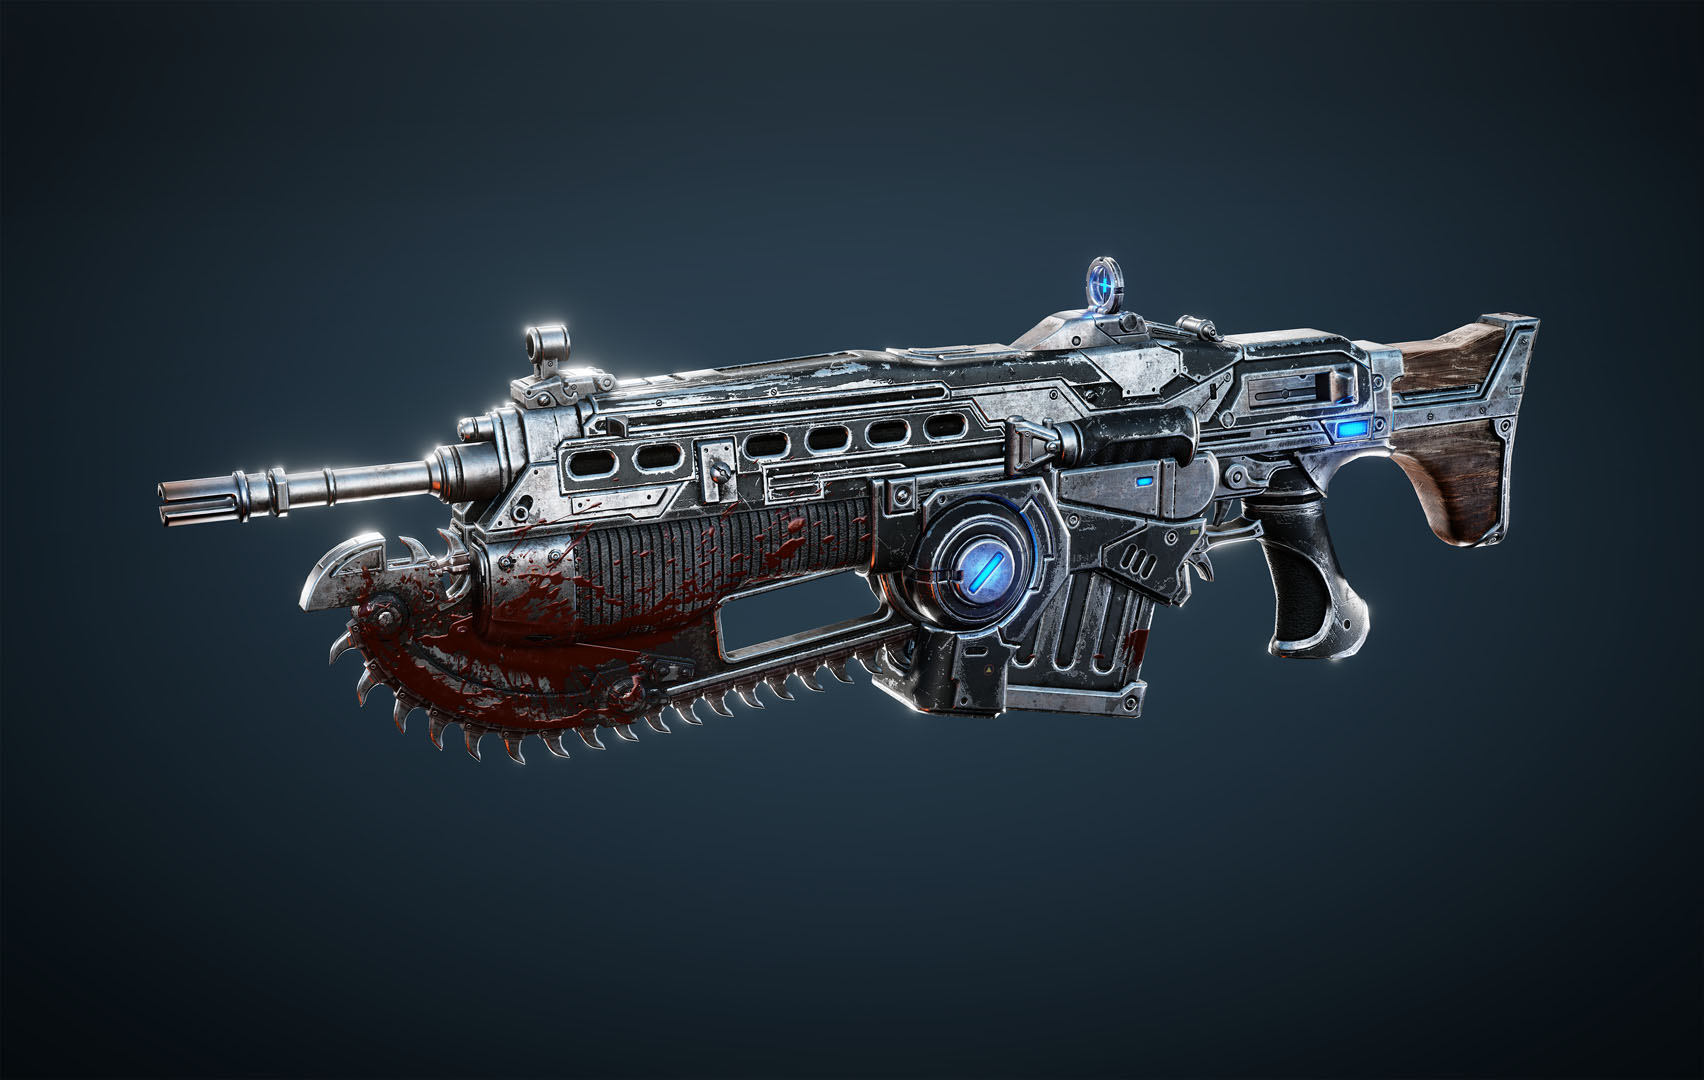 Customized lancer: weapon has gun barrel, magazine and saw